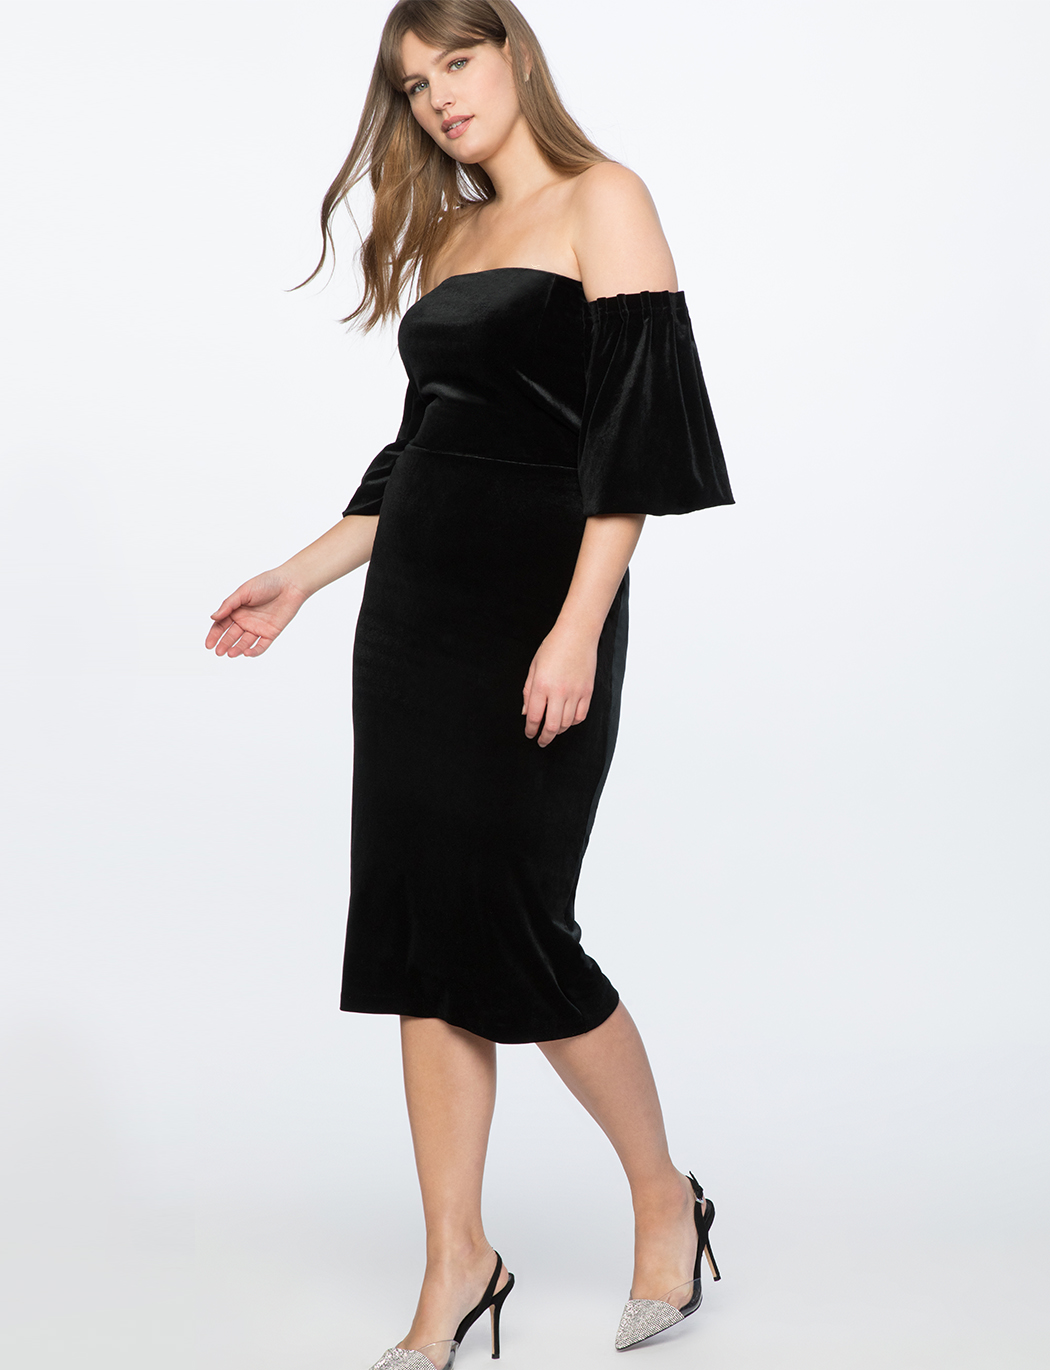 Strapless Velvet Dress with Full Sleeves 14